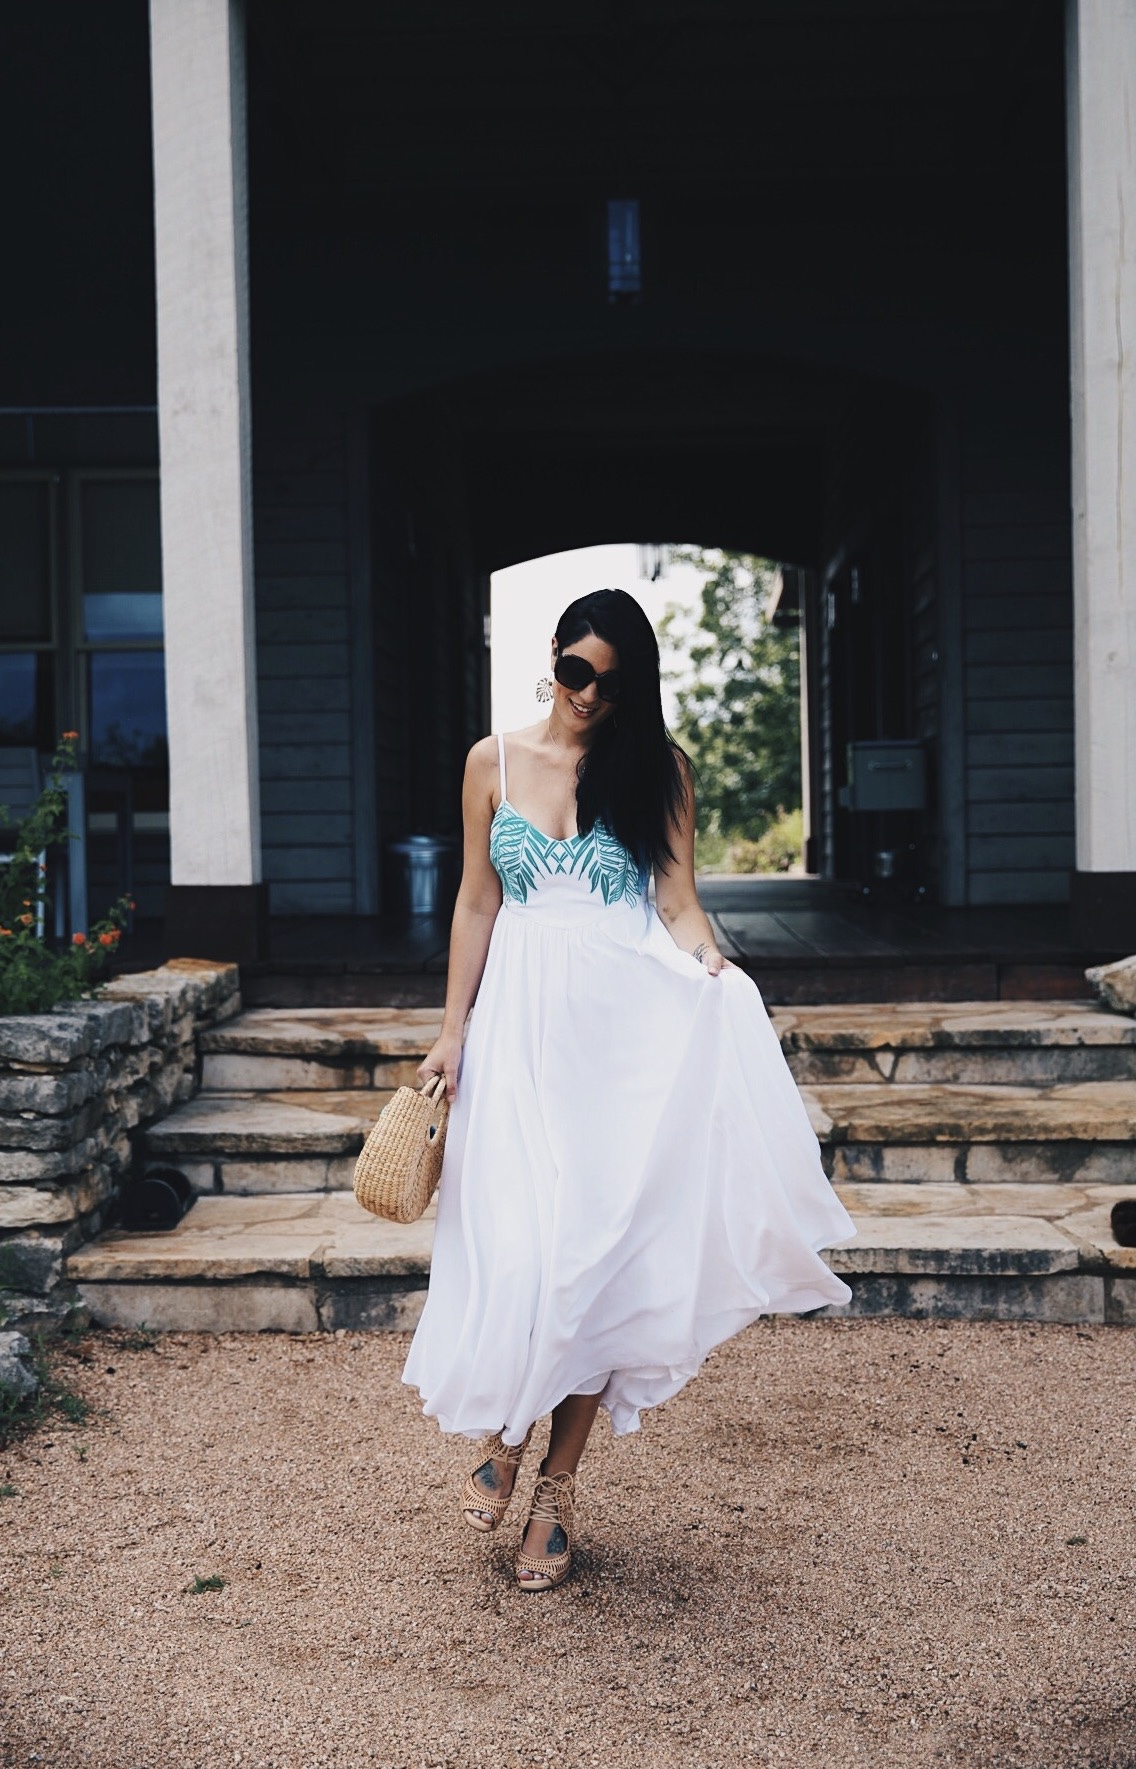 DTKAustin shares her go-to online boutique for shopping everything summer, Maison du Maillot. They have you covered for the perfect summer getaway. Click for more information and photos. | how to style an embroidered dress | how to wear an embroidered dress | embroidered dress style tips | summer fashion tips | summer outfit ideas | summer style tips | what to wear for summer | warm weather fashion | fashion for summer | style tips for summer | outfit ideas for summer || Dressed to Kill